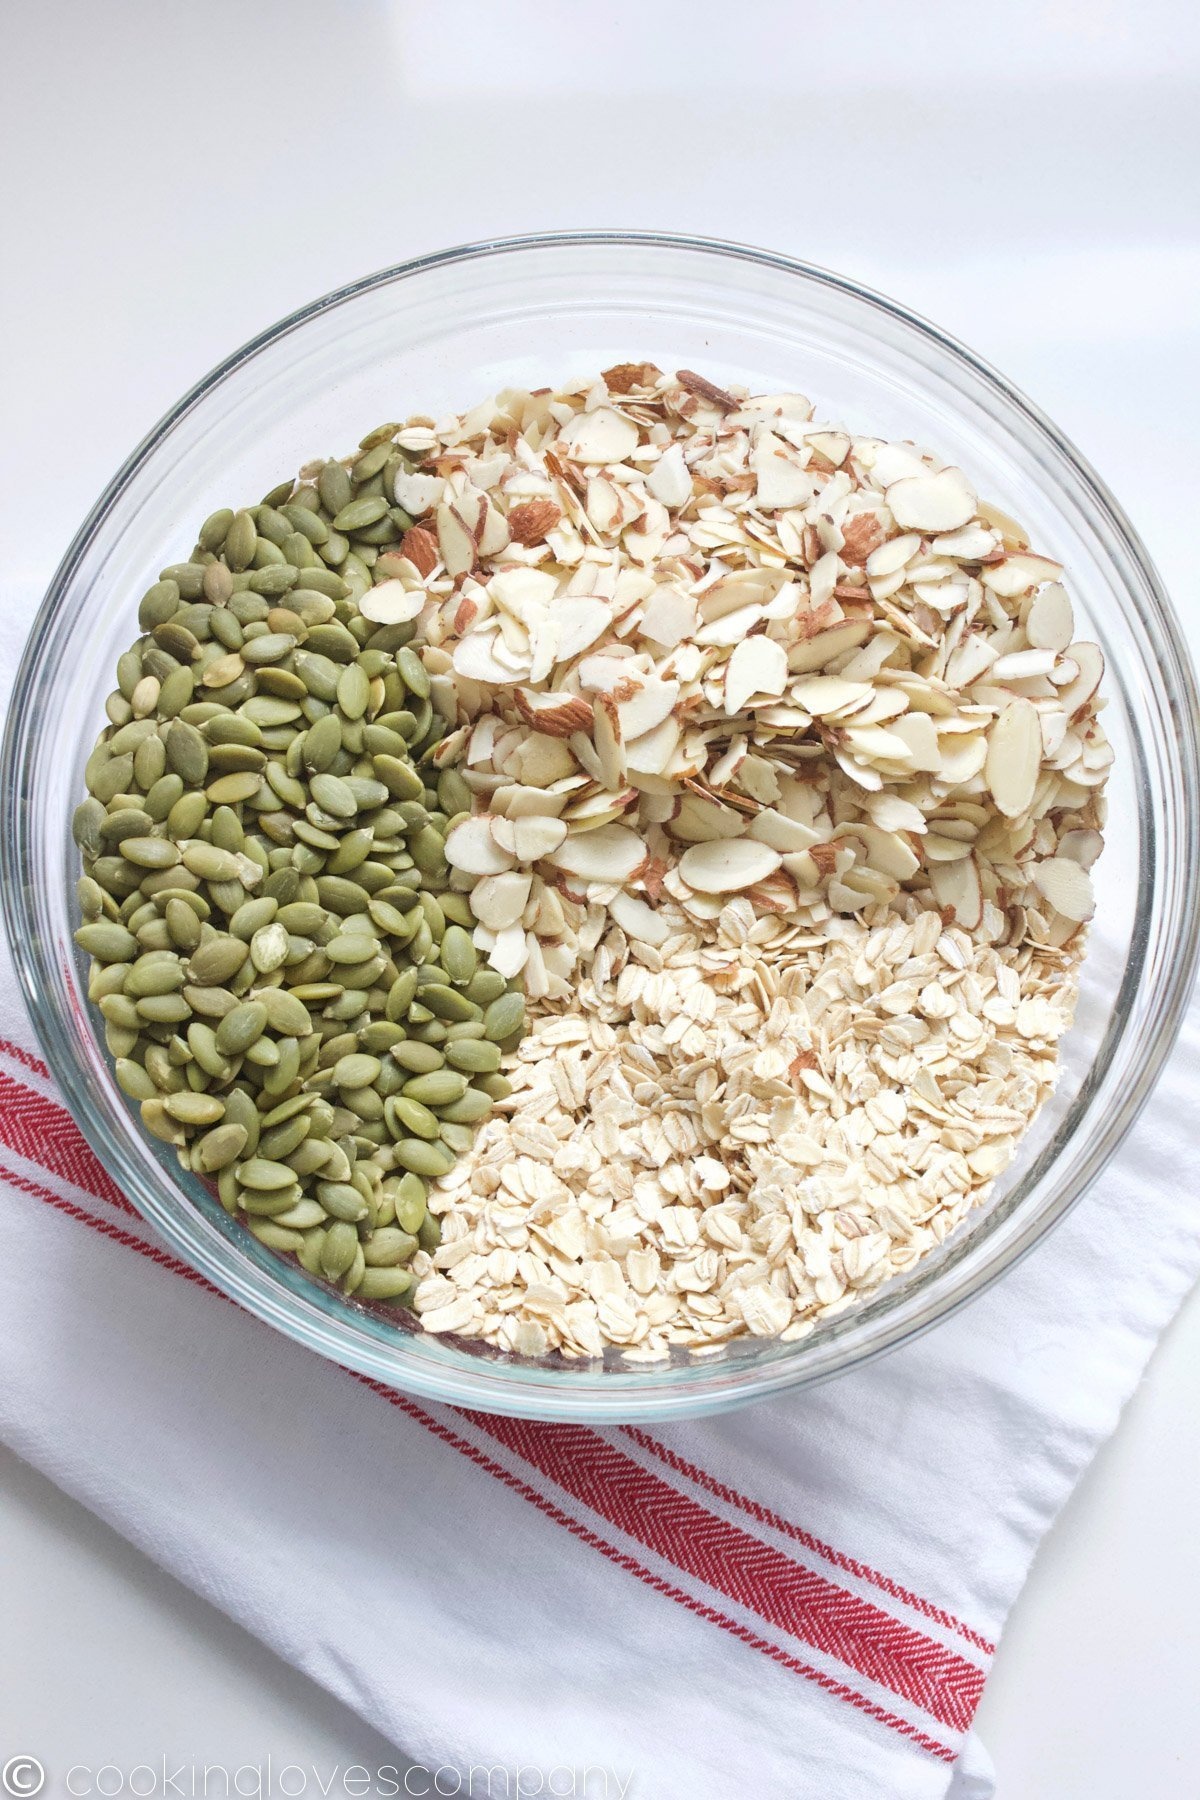 Pumpkin seeds, rolled oats and slivered almonds in a glass bowl on a counter